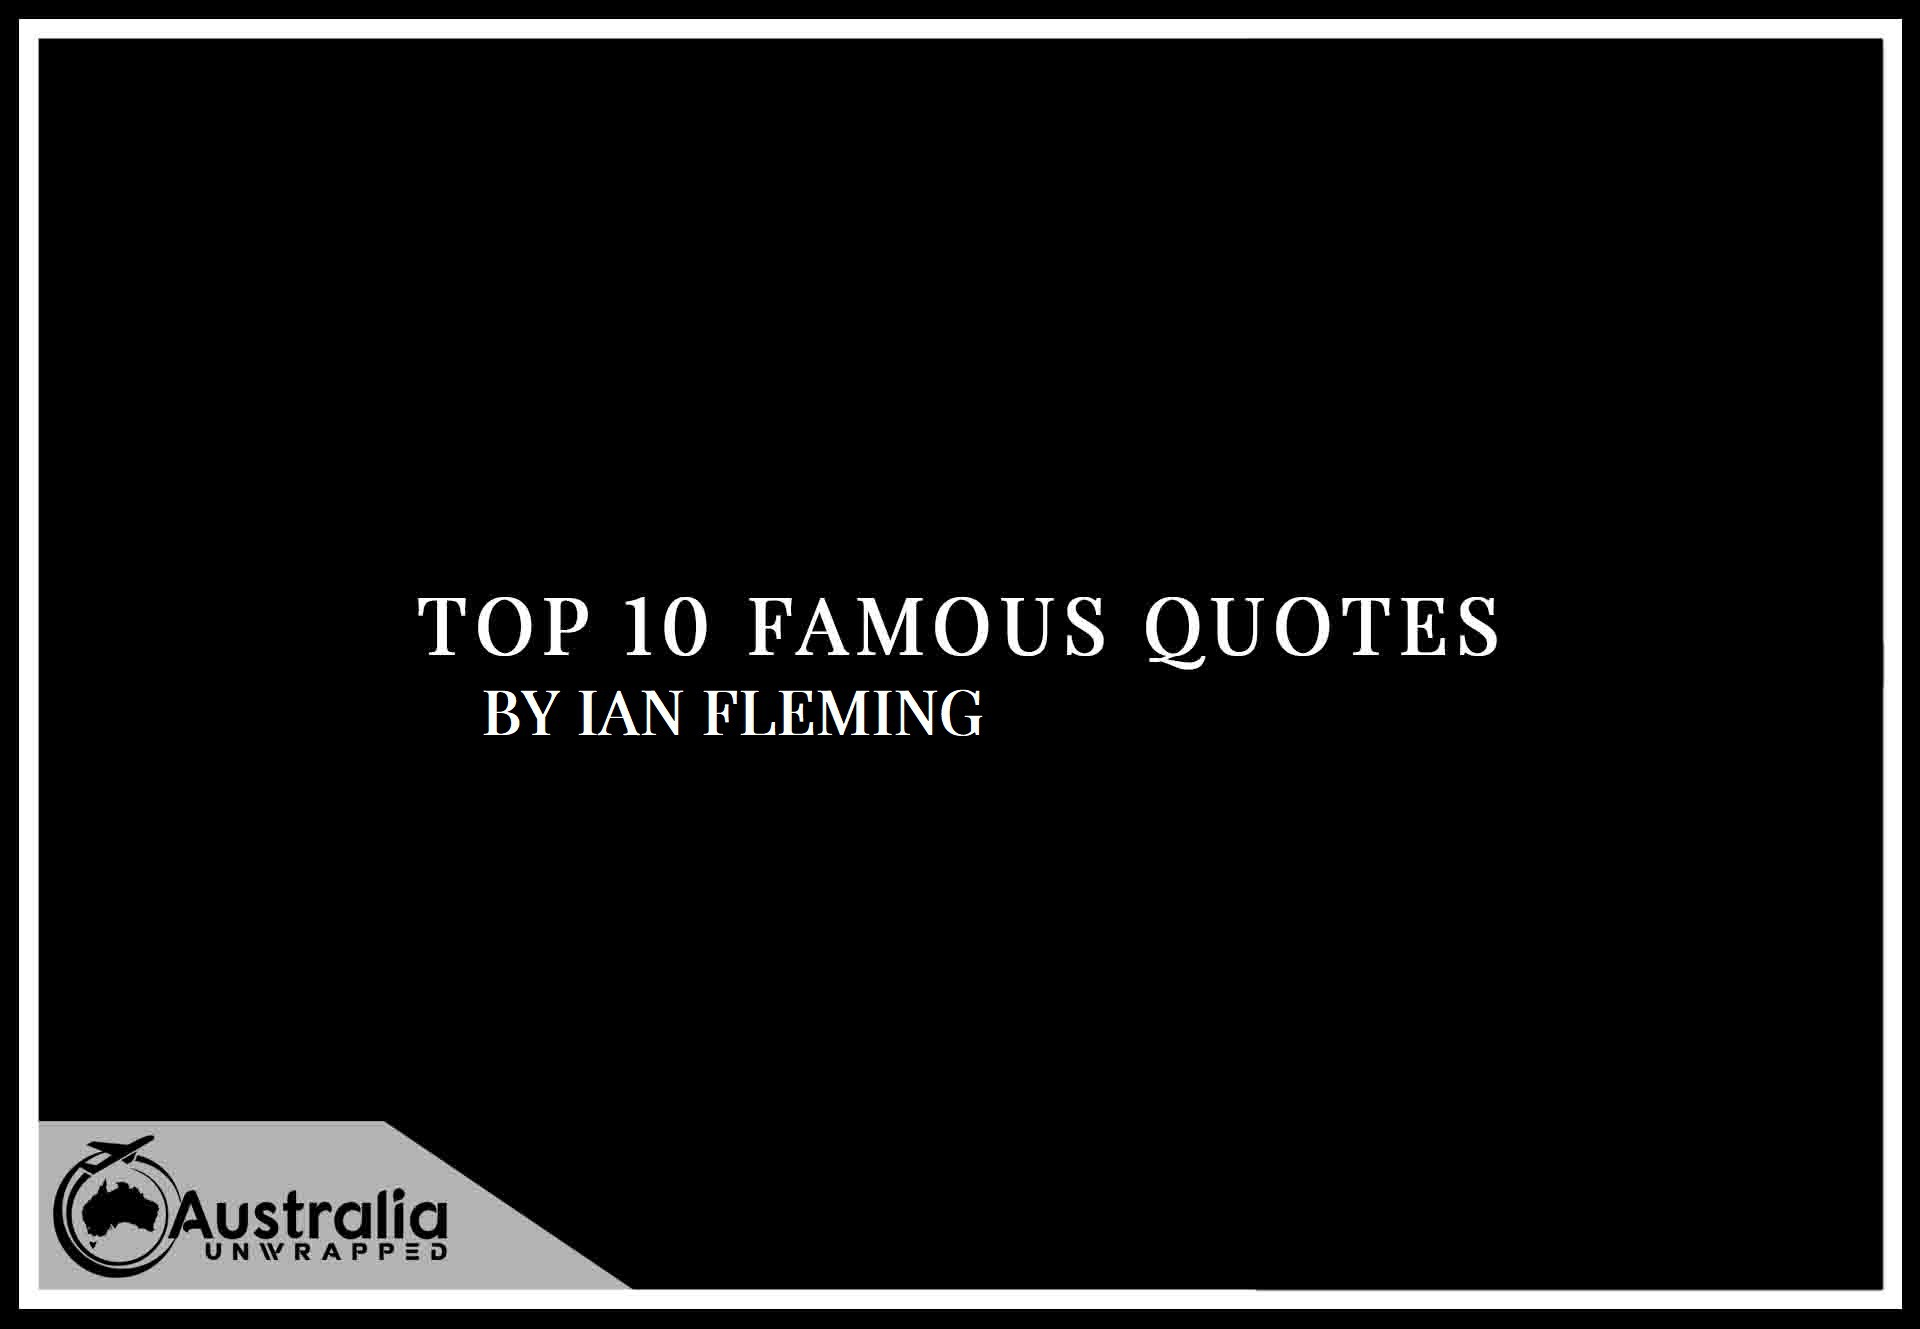 Top 10 Famous Quotes by Author Ian Fleming